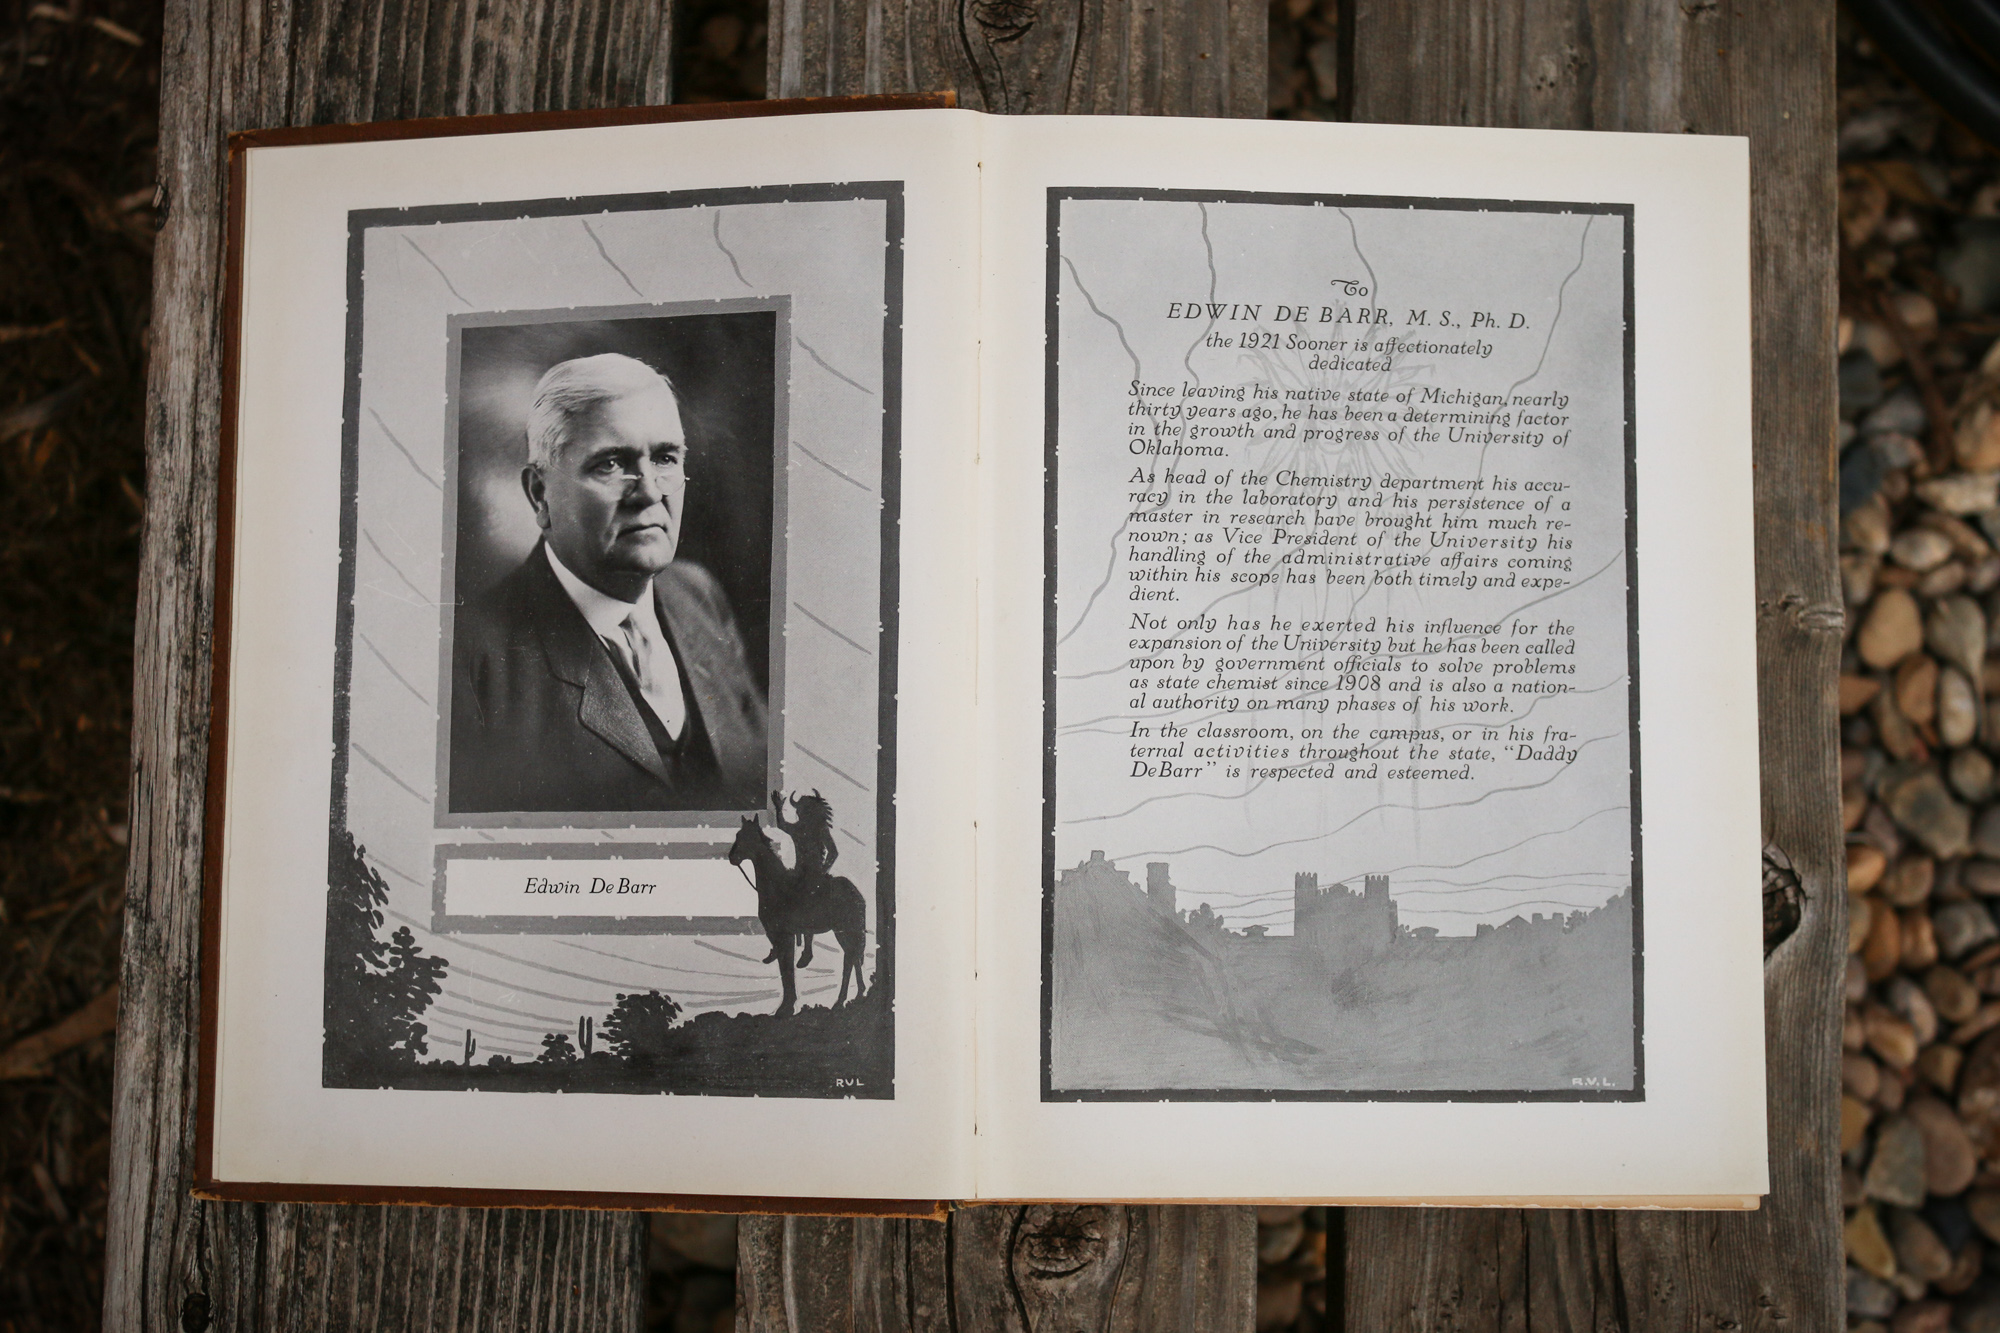 1921 Sooner yearbook dedication to Edwin DeBarr